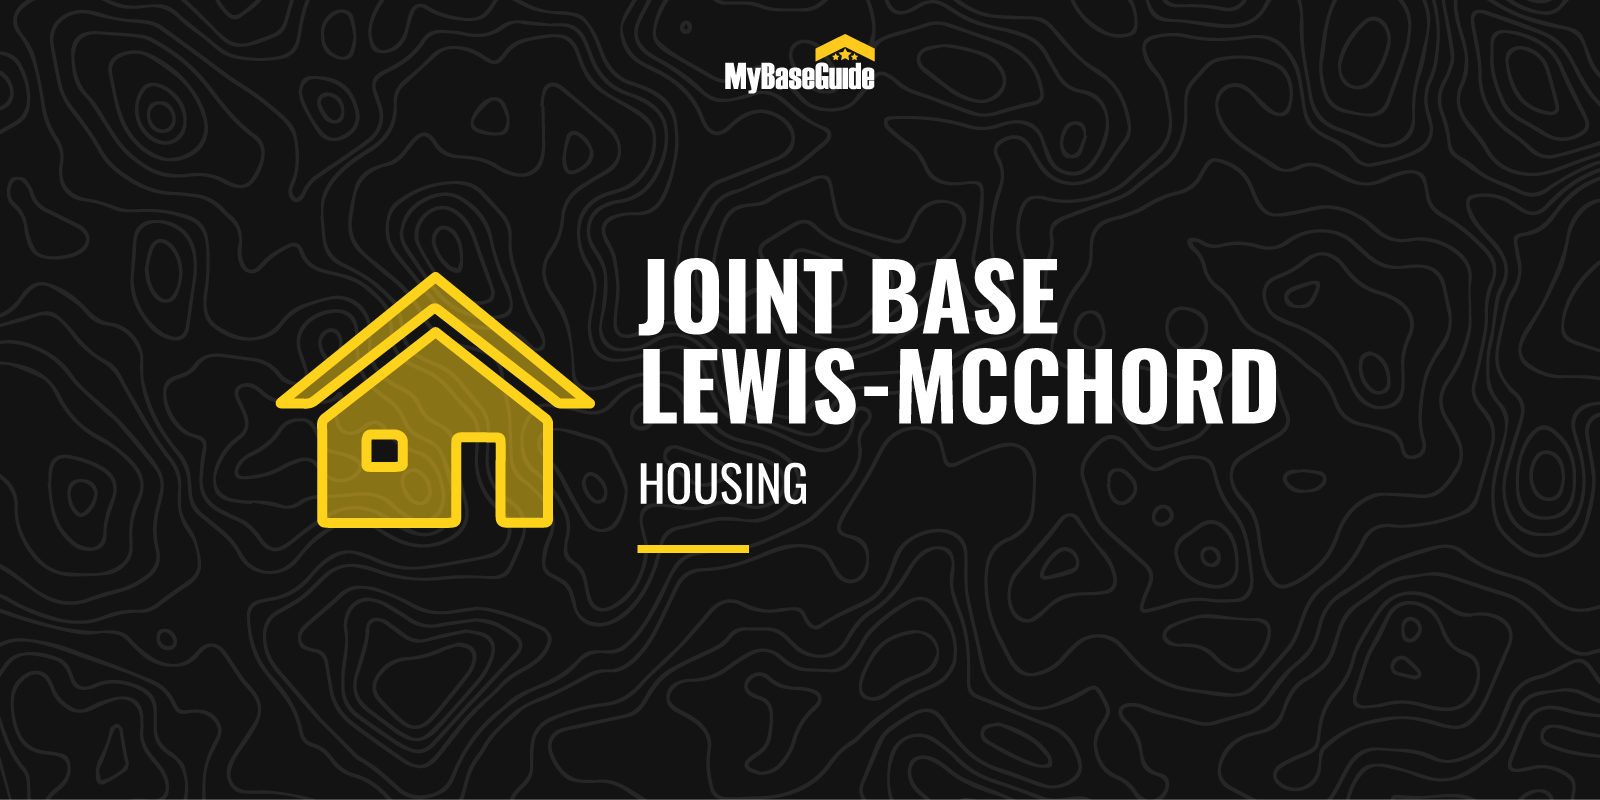 Joint Base Lewis-McChord Housing